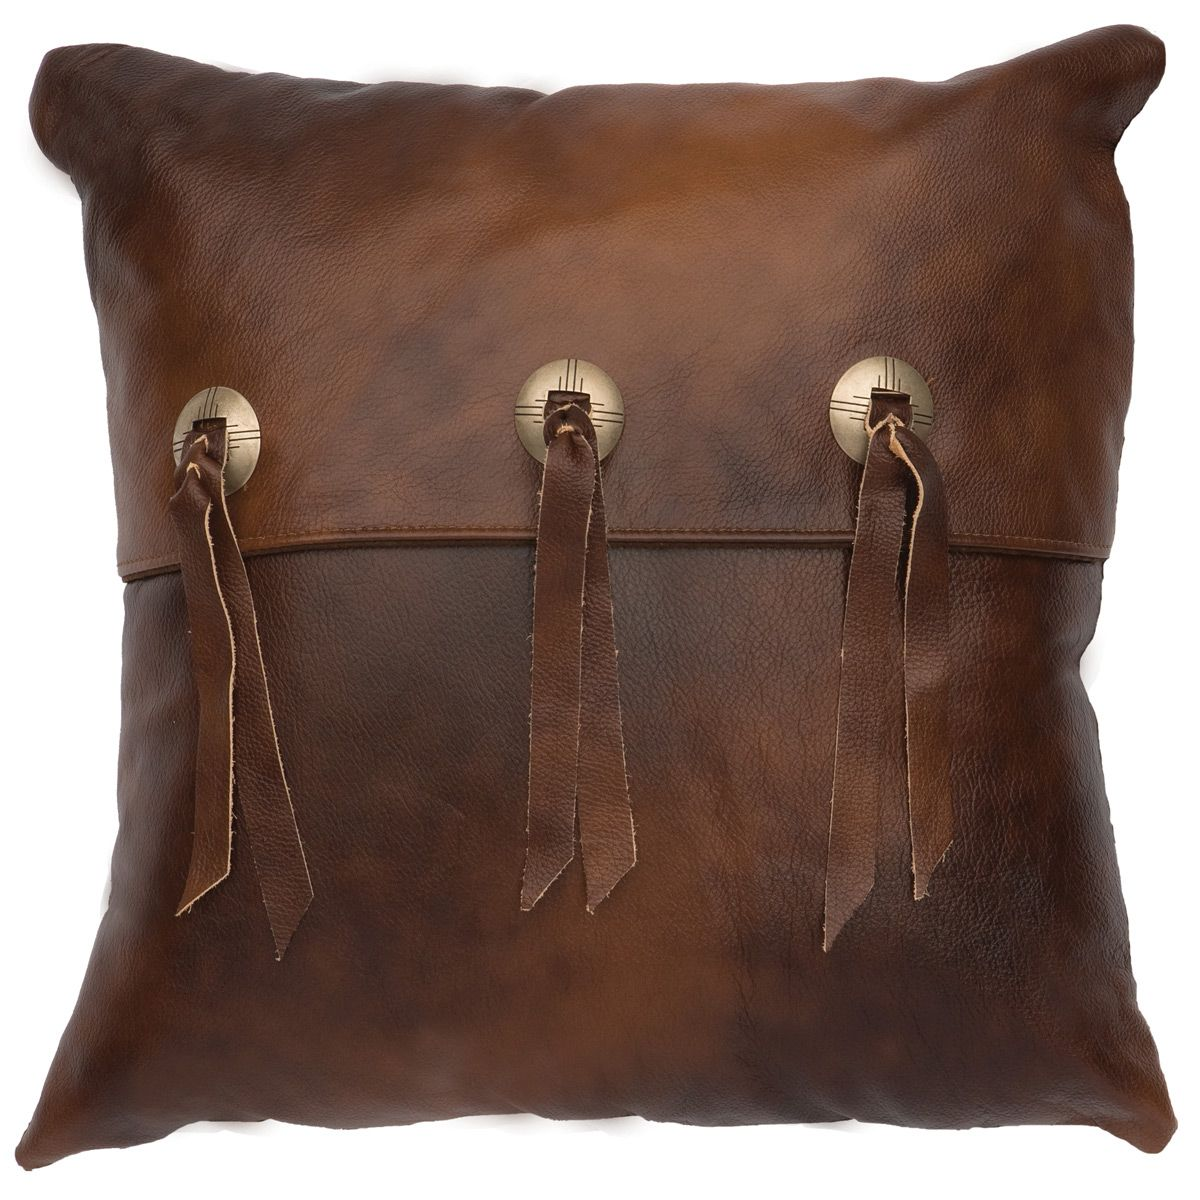 Harness Leather with Flap & Slotted Conchos Pillow